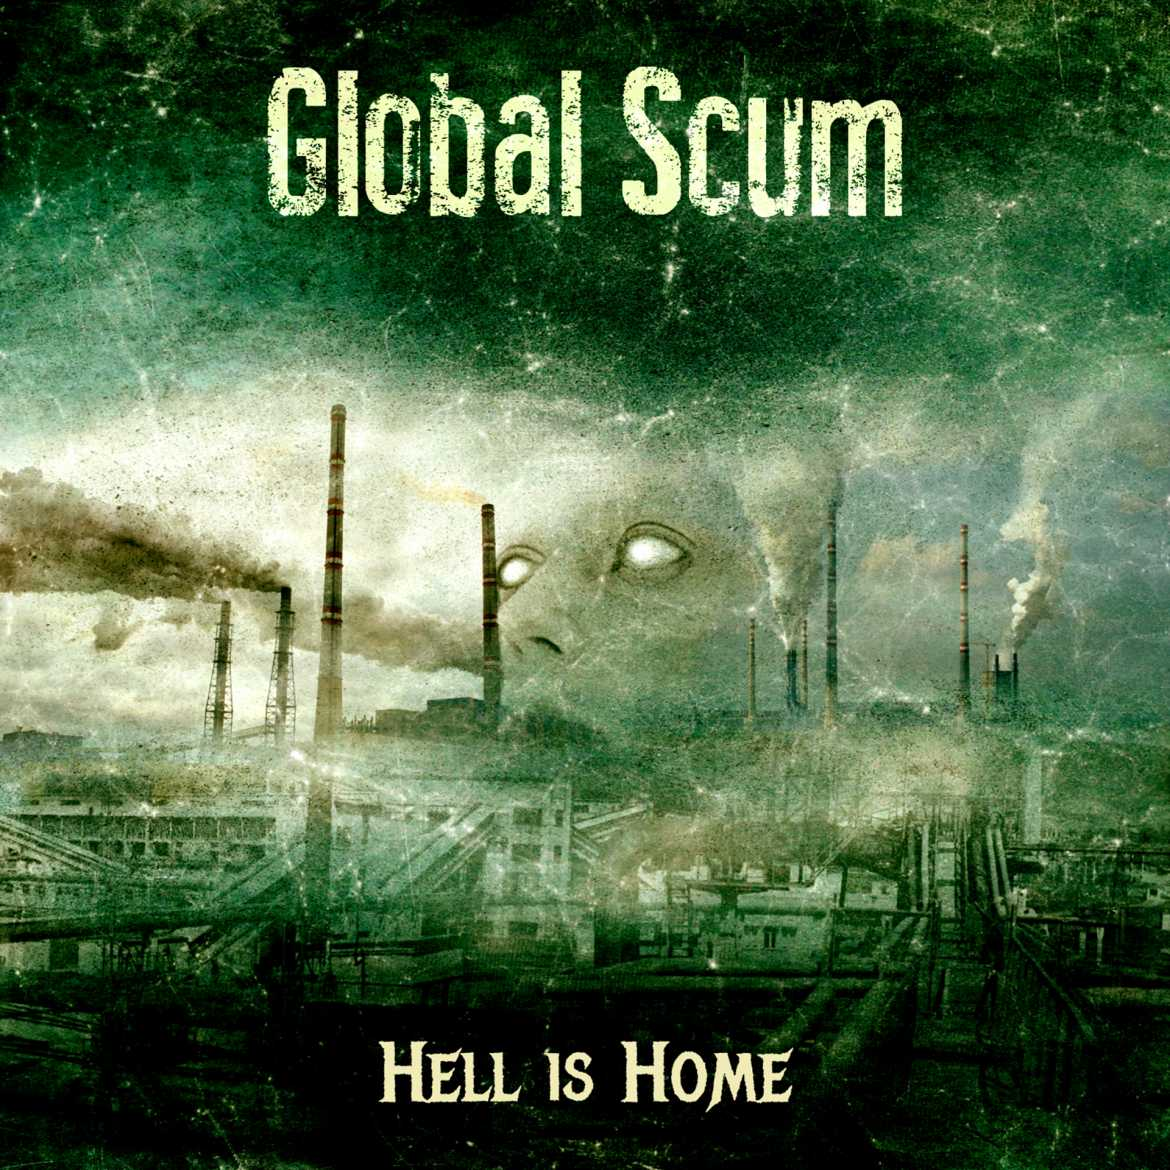 Global Scum - Hell Is Home Artwork